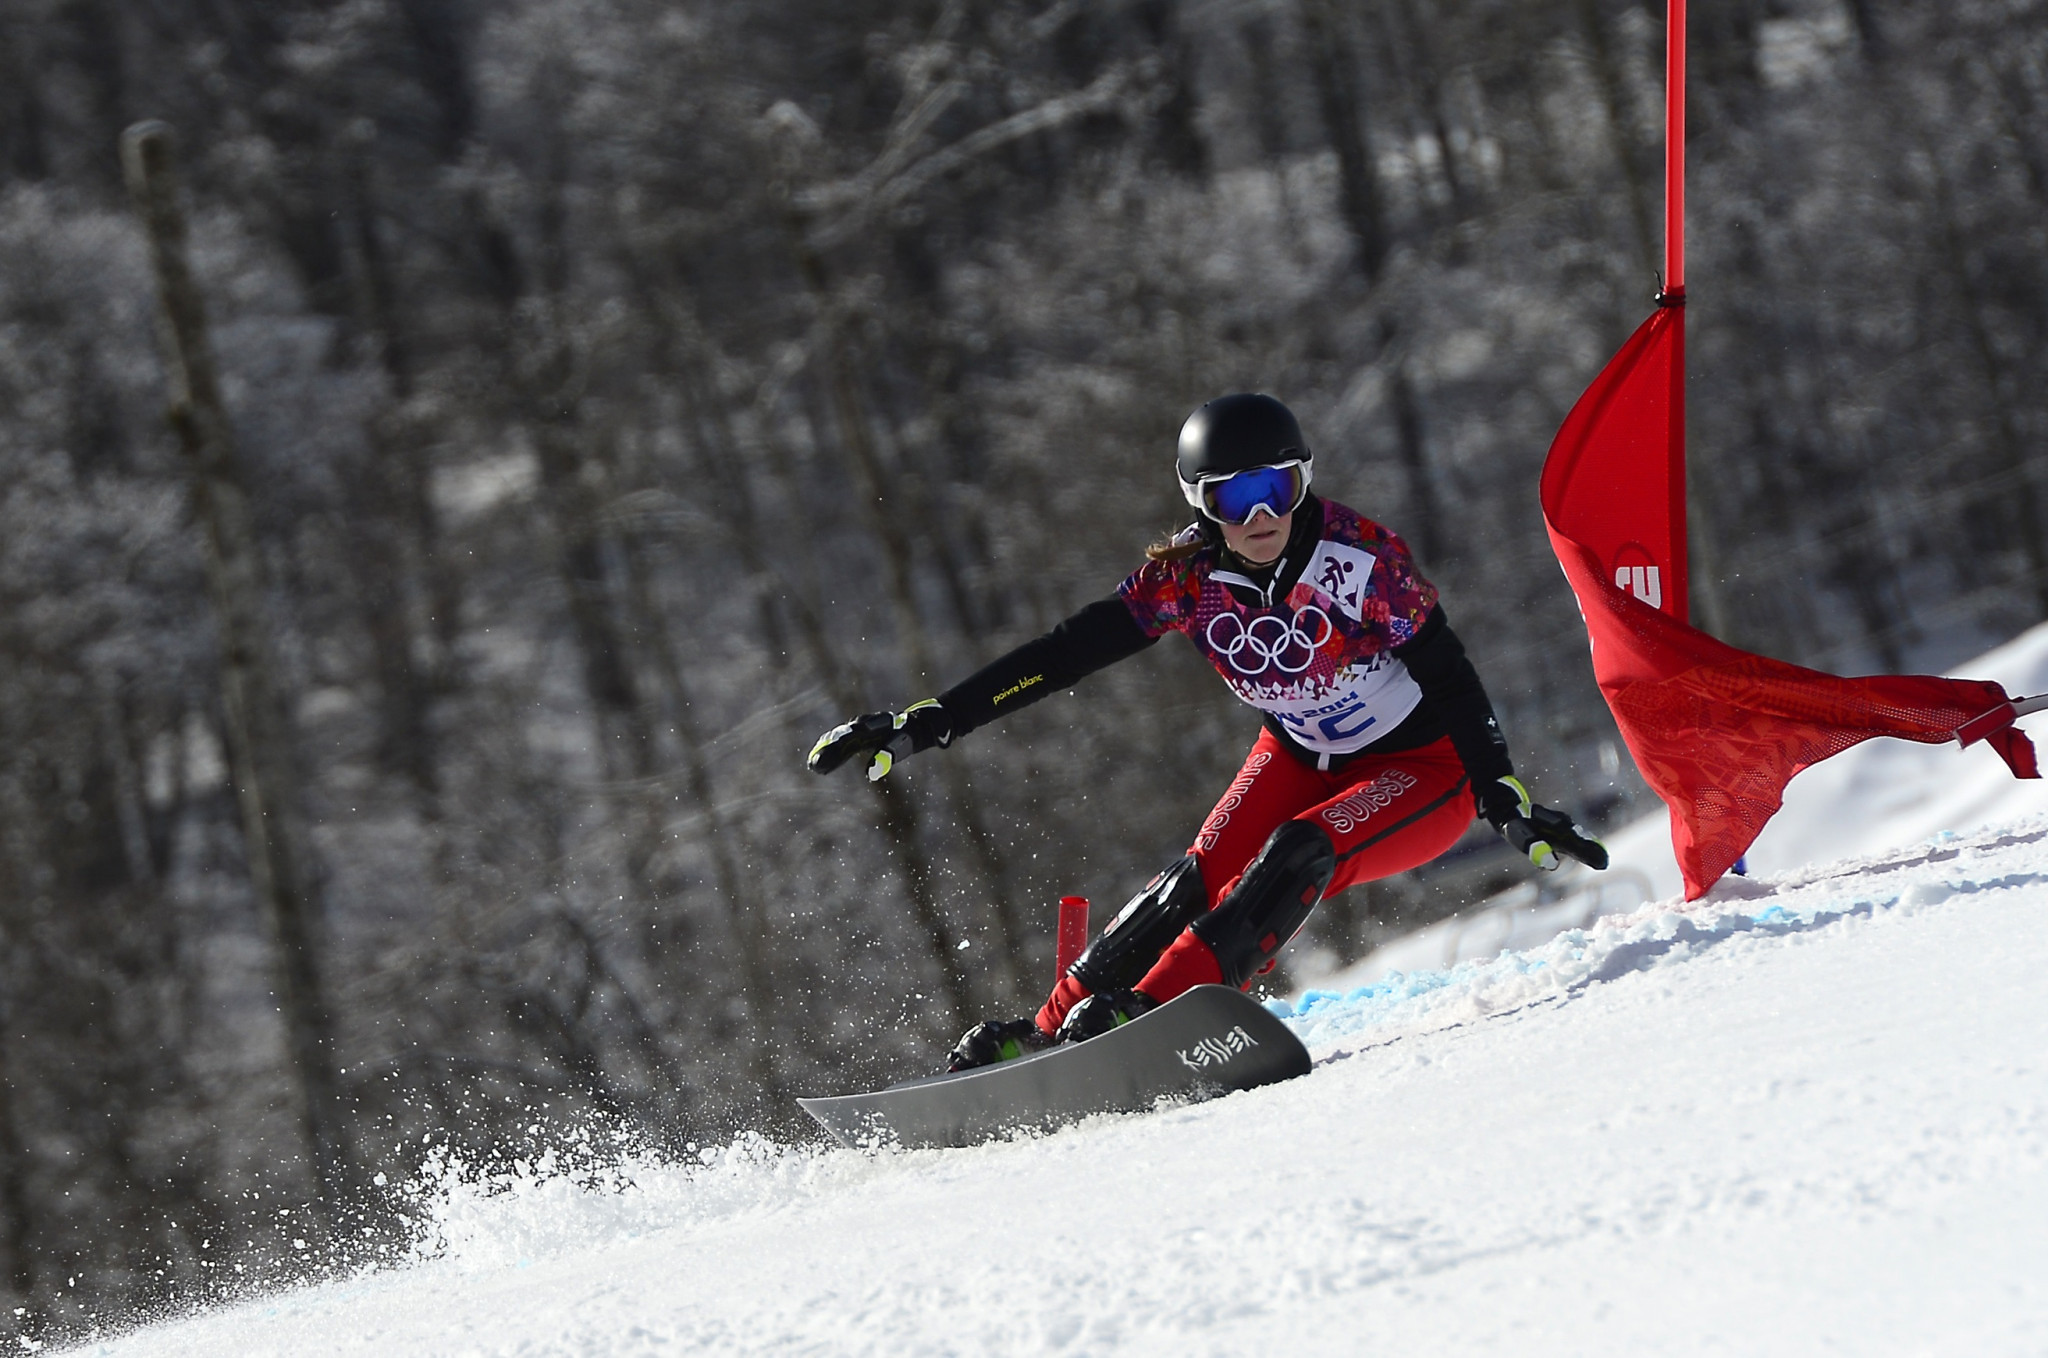 FIS Alpine Snowboard World Cup set to begin in Italy with trio of parallel races